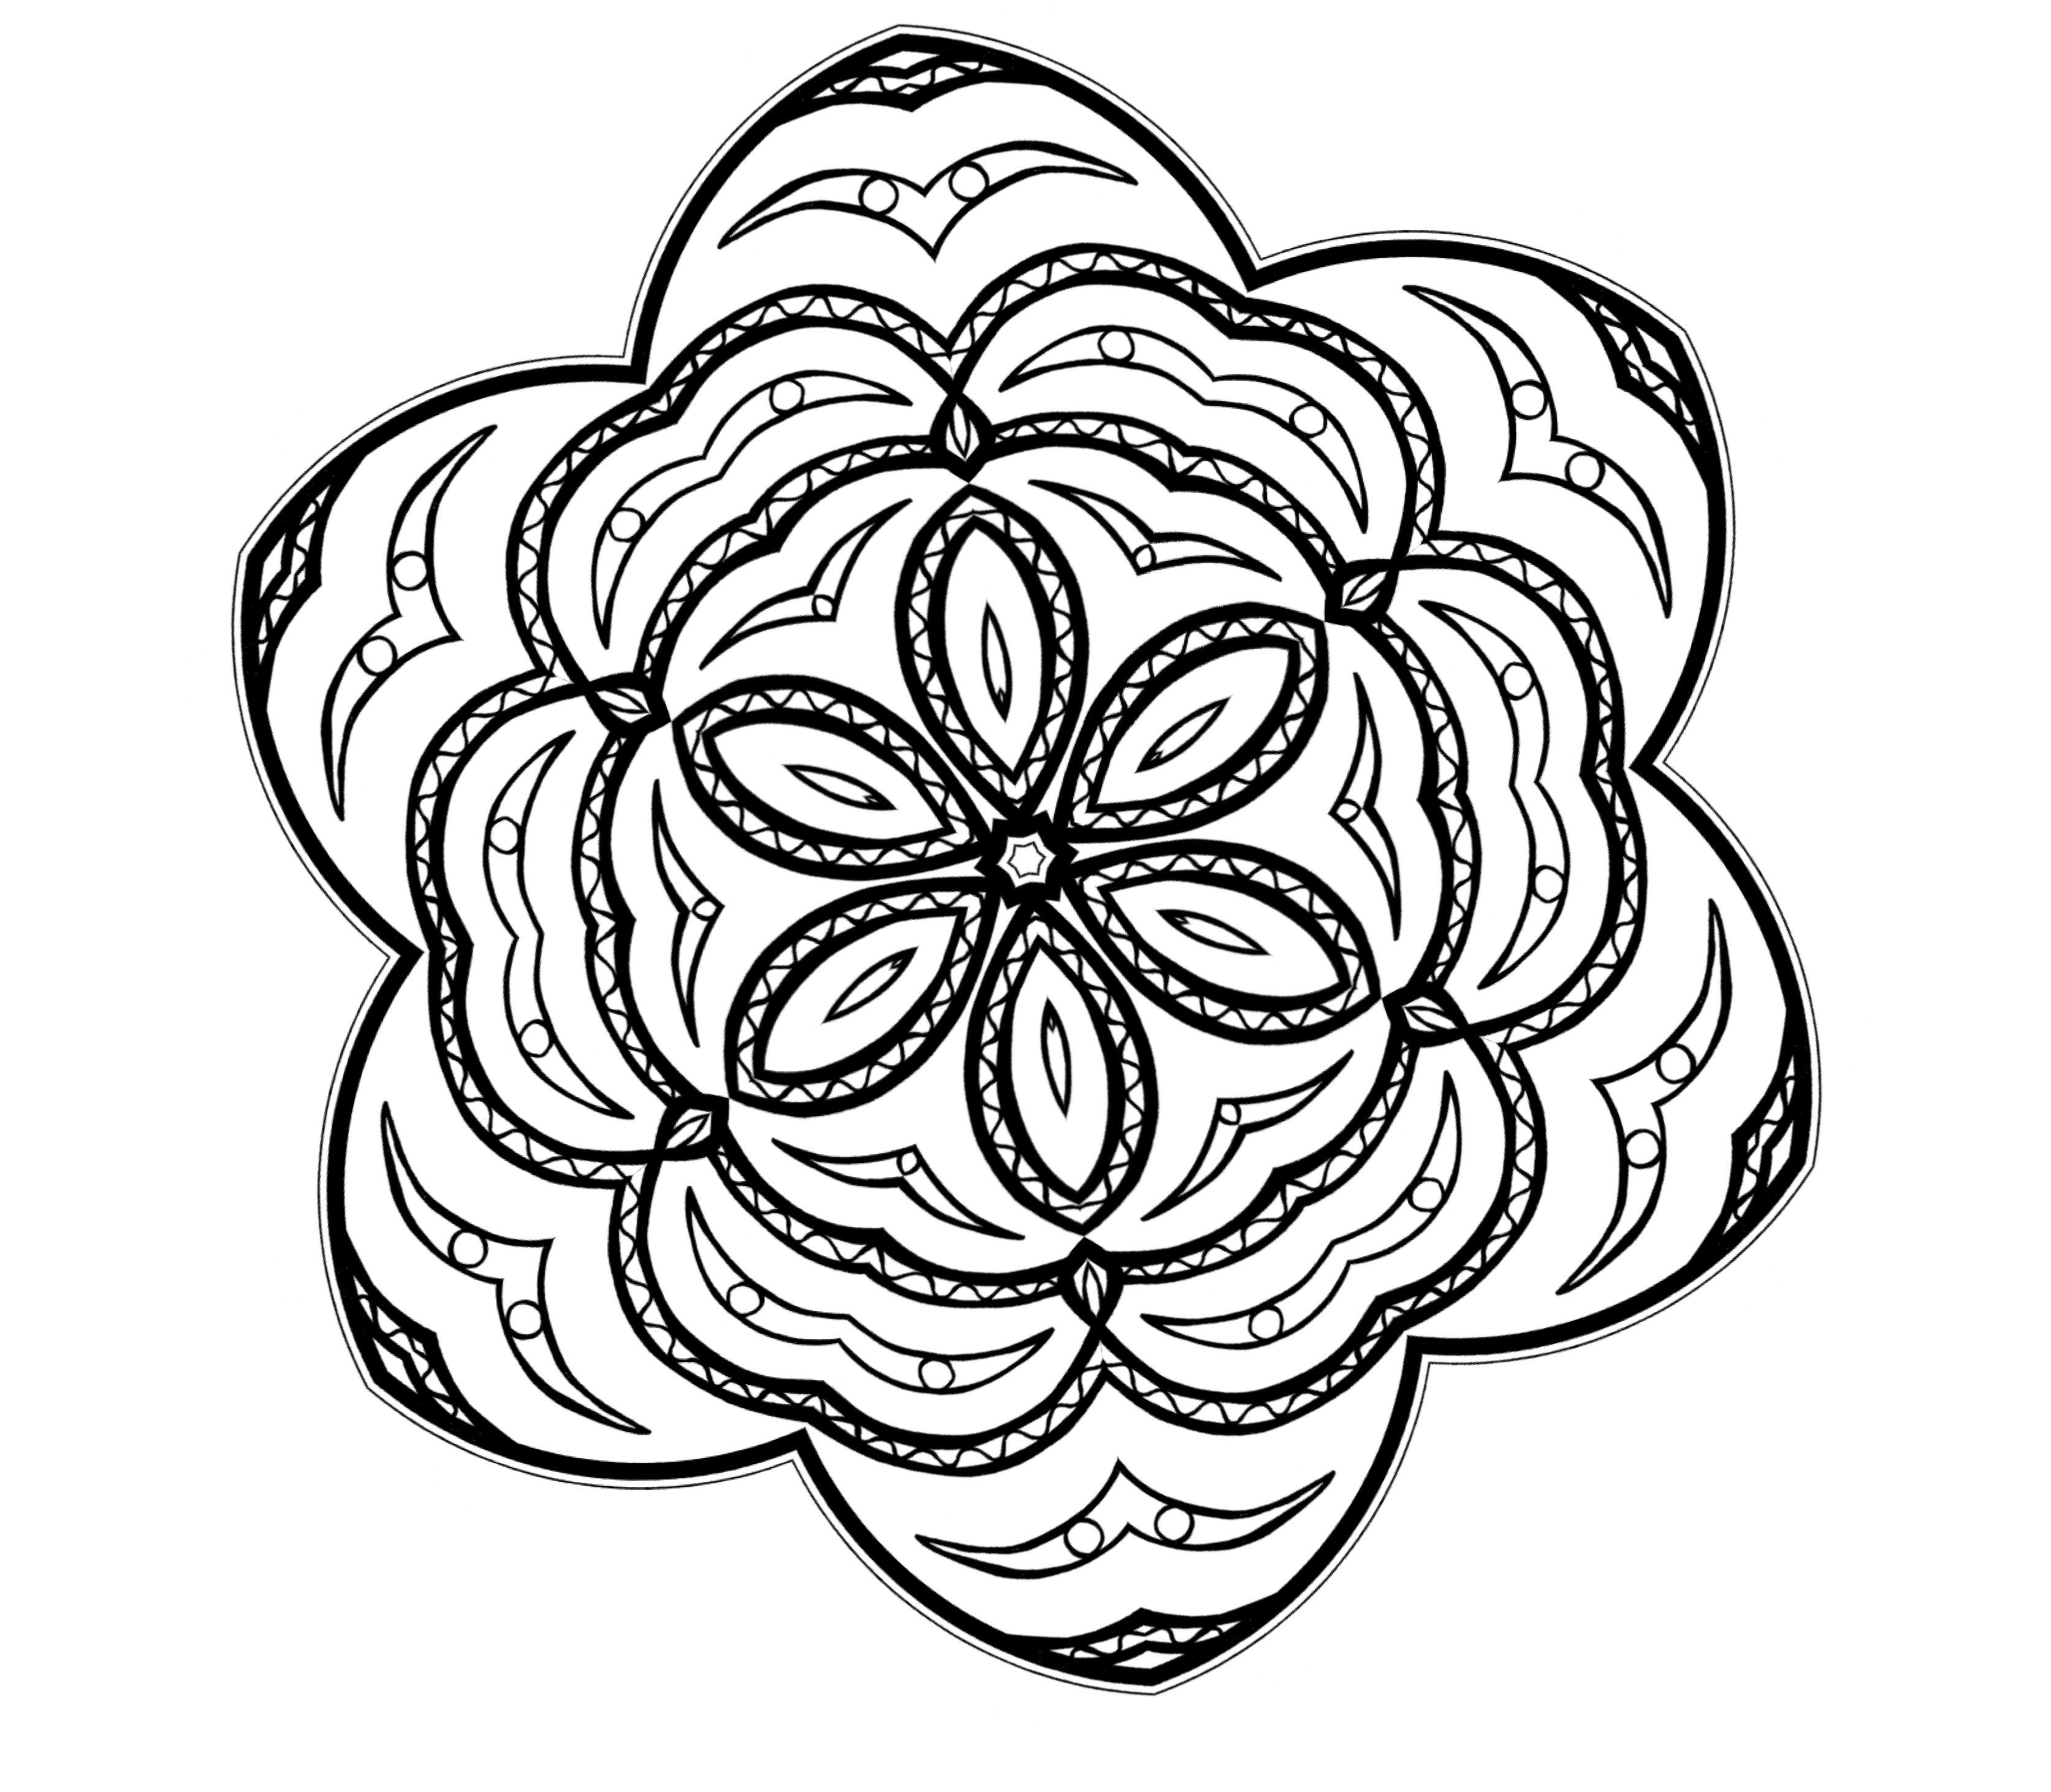 abstract coloring pages to print free printable abstract coloring pages for kids pages print to coloring abstract